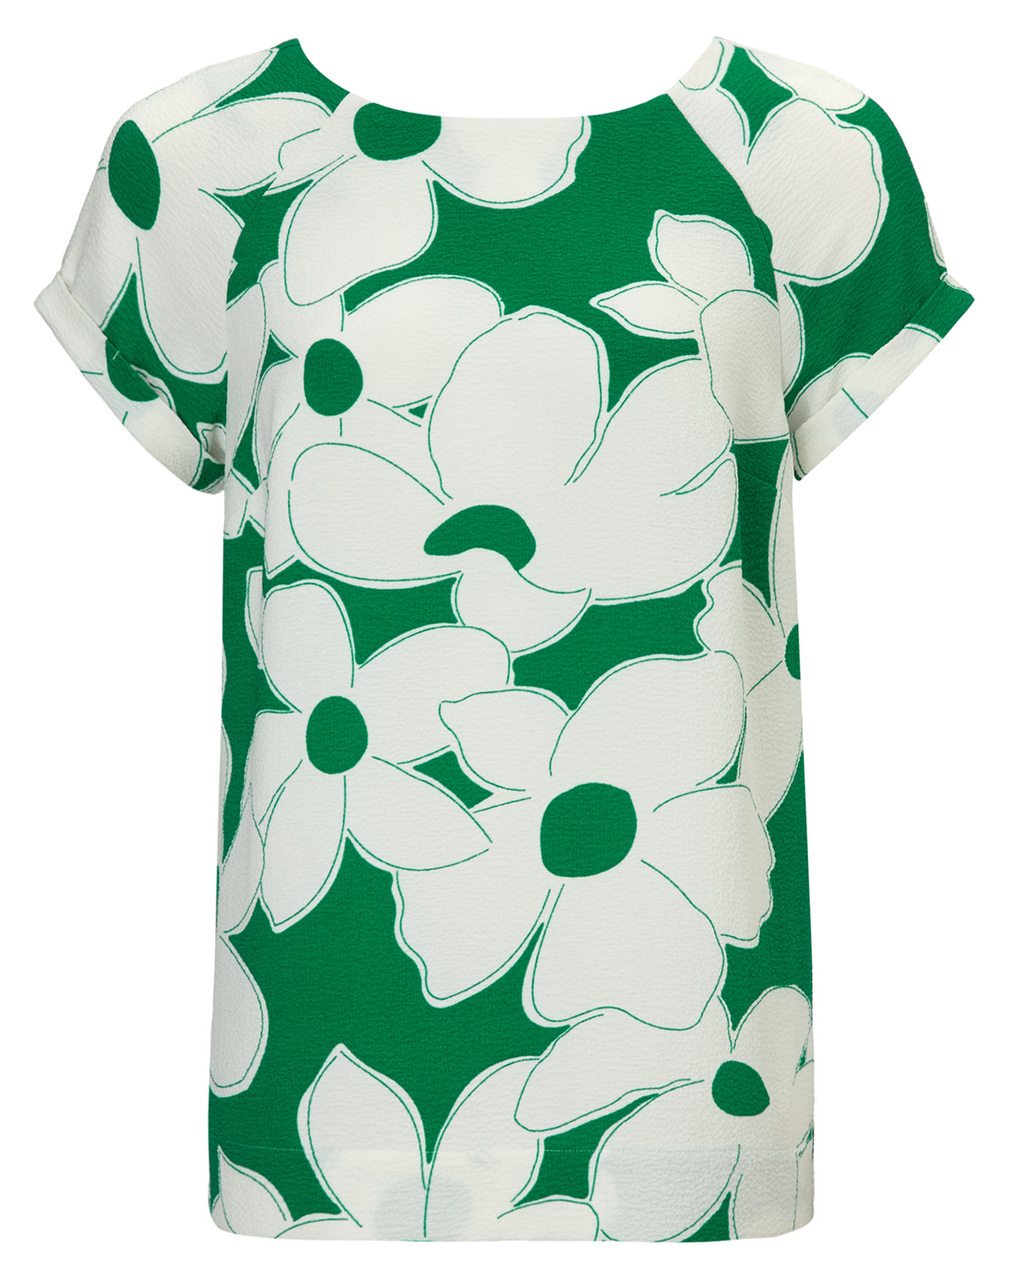 Frances Floral Crepe Blouse - secondary colour: white; predominant colour: emerald green; occasions: casual, creative work; length: standard; style: top; fit: straight cut; neckline: crew; sleeve length: short sleeve; sleeve style: standard; texture group: crepes; pattern type: fabric; pattern: florals; season: s/s 2015; pattern size: big & busy (top); wardrobe: highlight